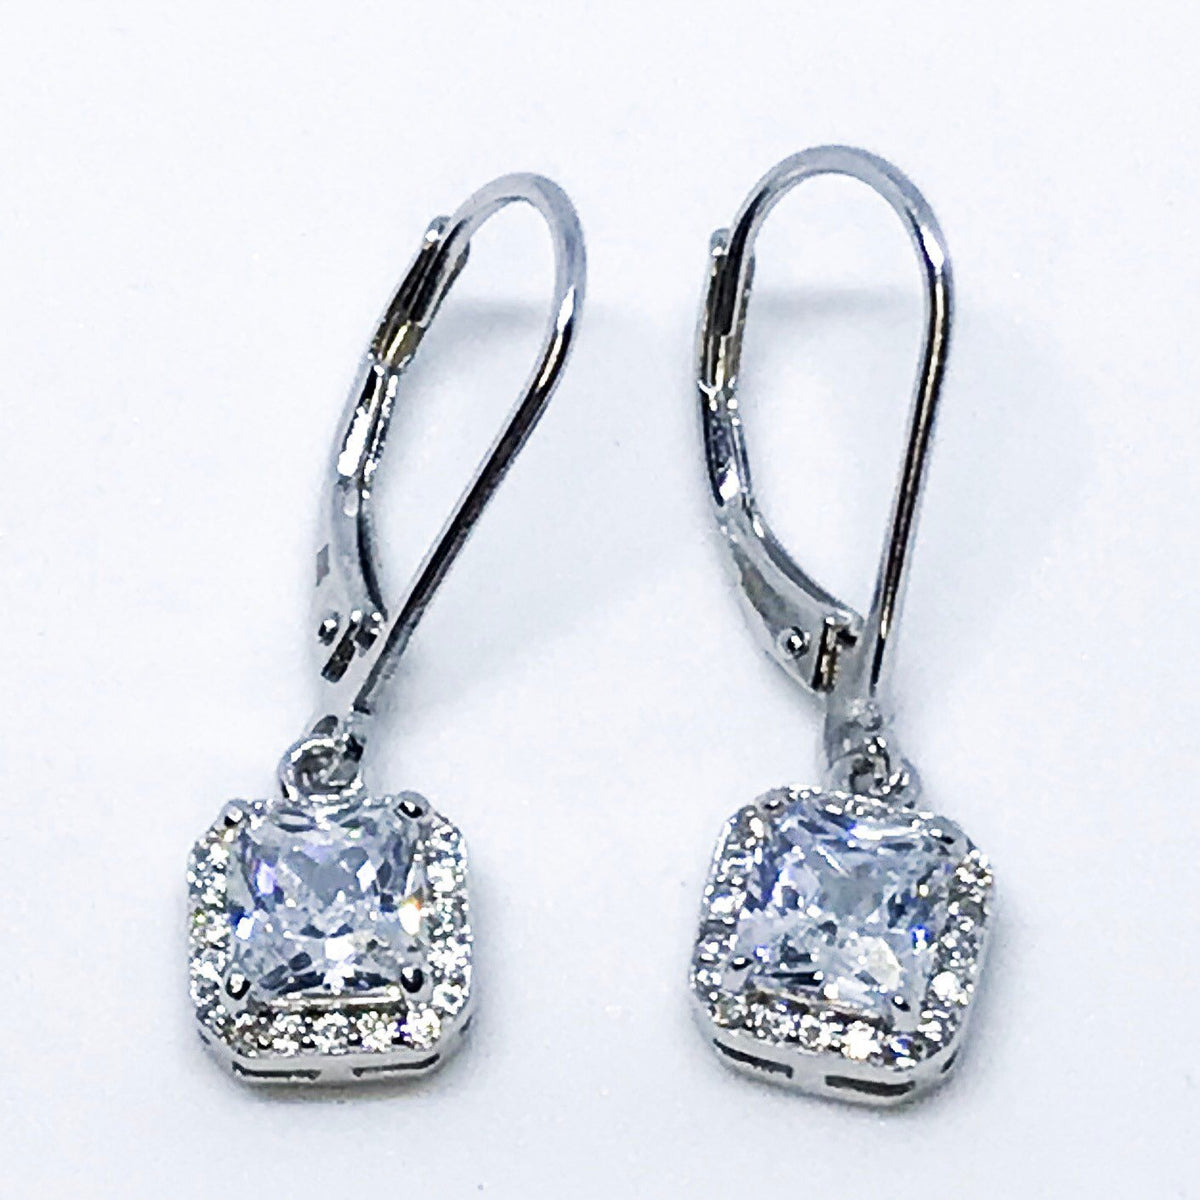 14K white gold on Sterling silver classy dangling earrings - 3 Royal Dazzy